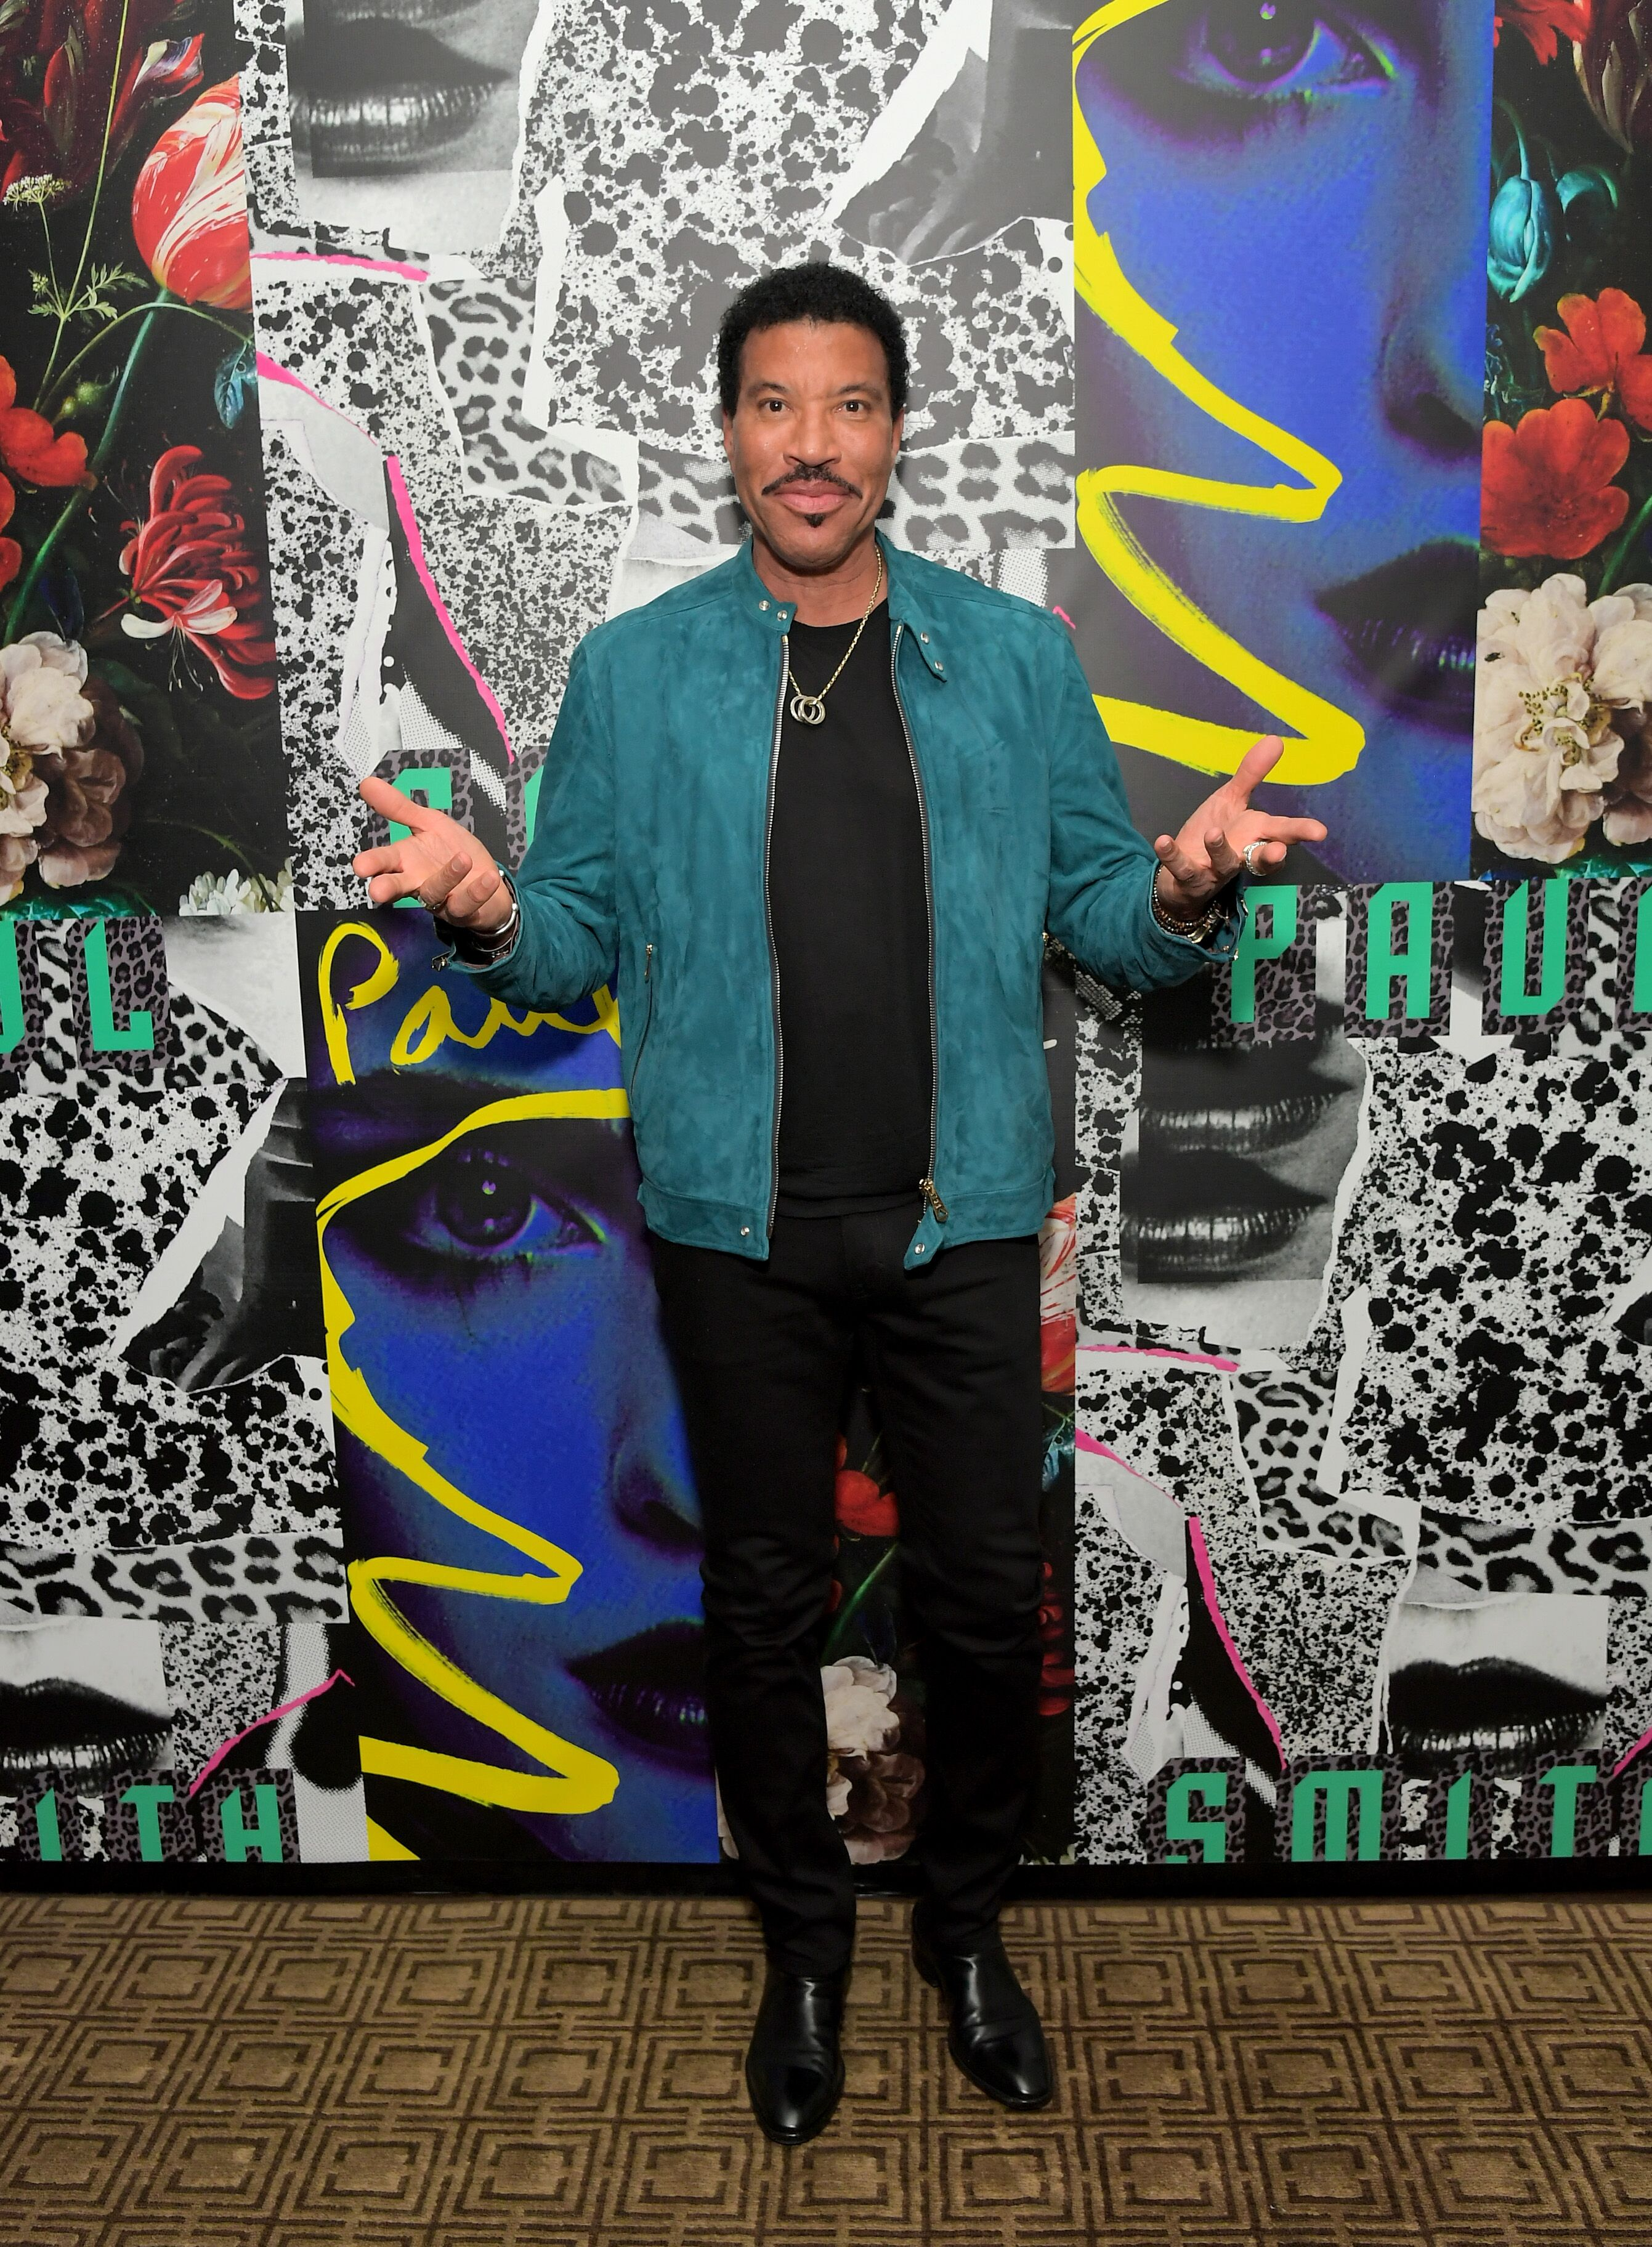 """Lionel Richie at the """"Paul Smith Honors John Legend"""" dinner on May 14, 2019, in Los Angeles, California 